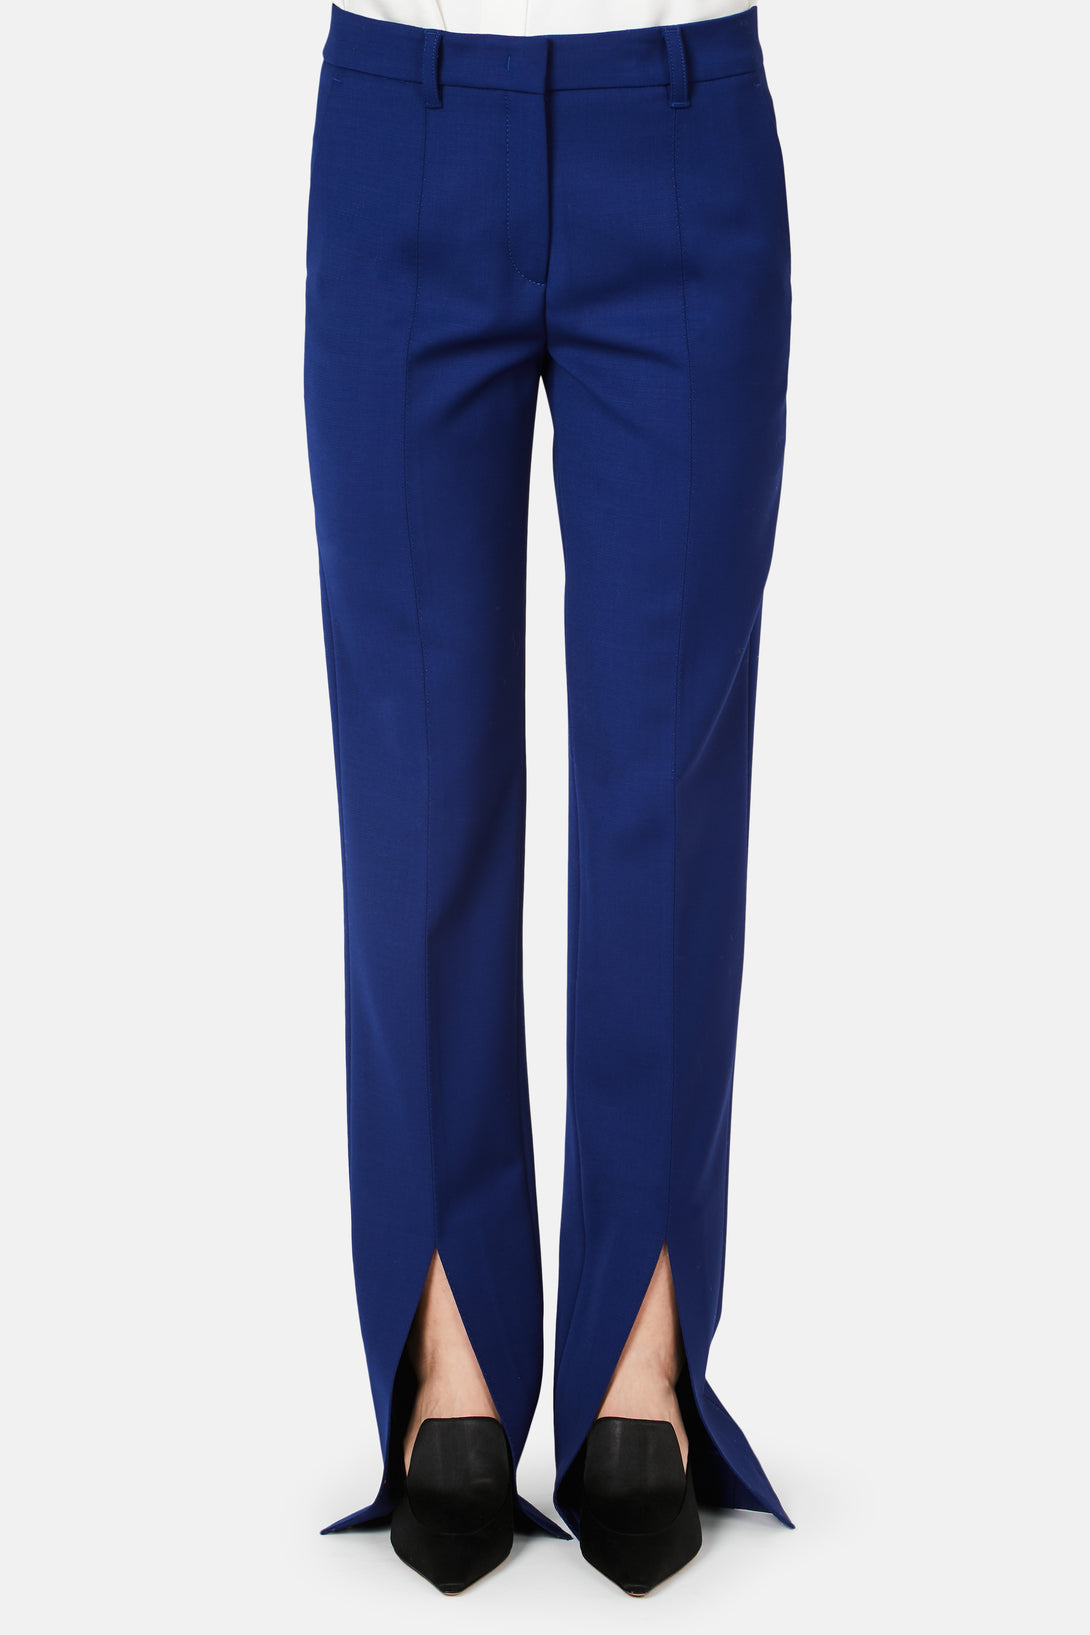 Francisco Bottom Slit Pant - Cobalt